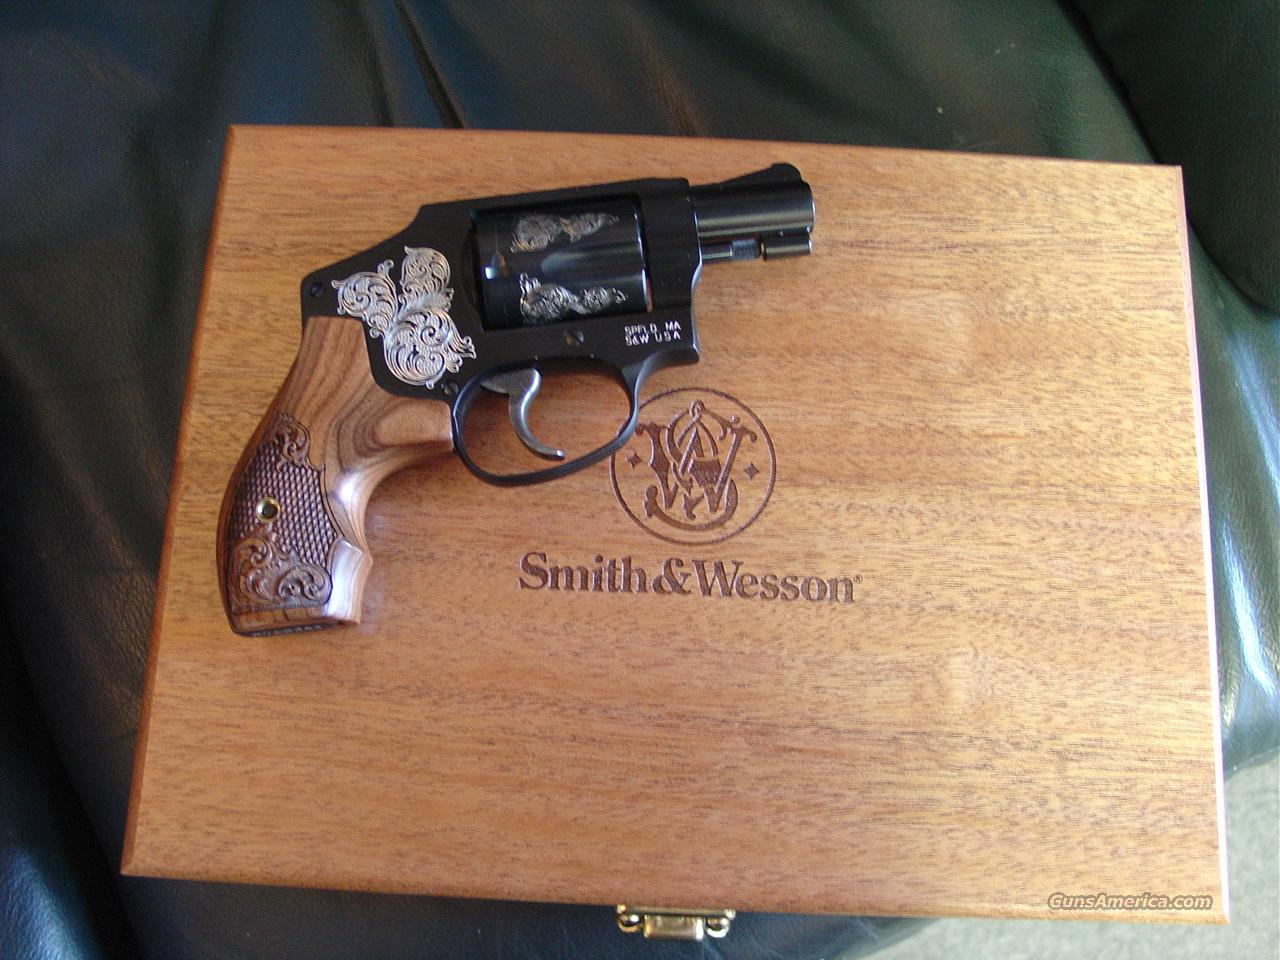 "Smith & Wesson Model 442,Limited Engraved edition,38 special +P,1.875"" barrel,5 shots,wood pres.case,S&W carry case all papers,lock,test round,NIB,made in 2014 !!  Guns > Pistols > Smith & Wesson Revolvers > Pocket Pistols"